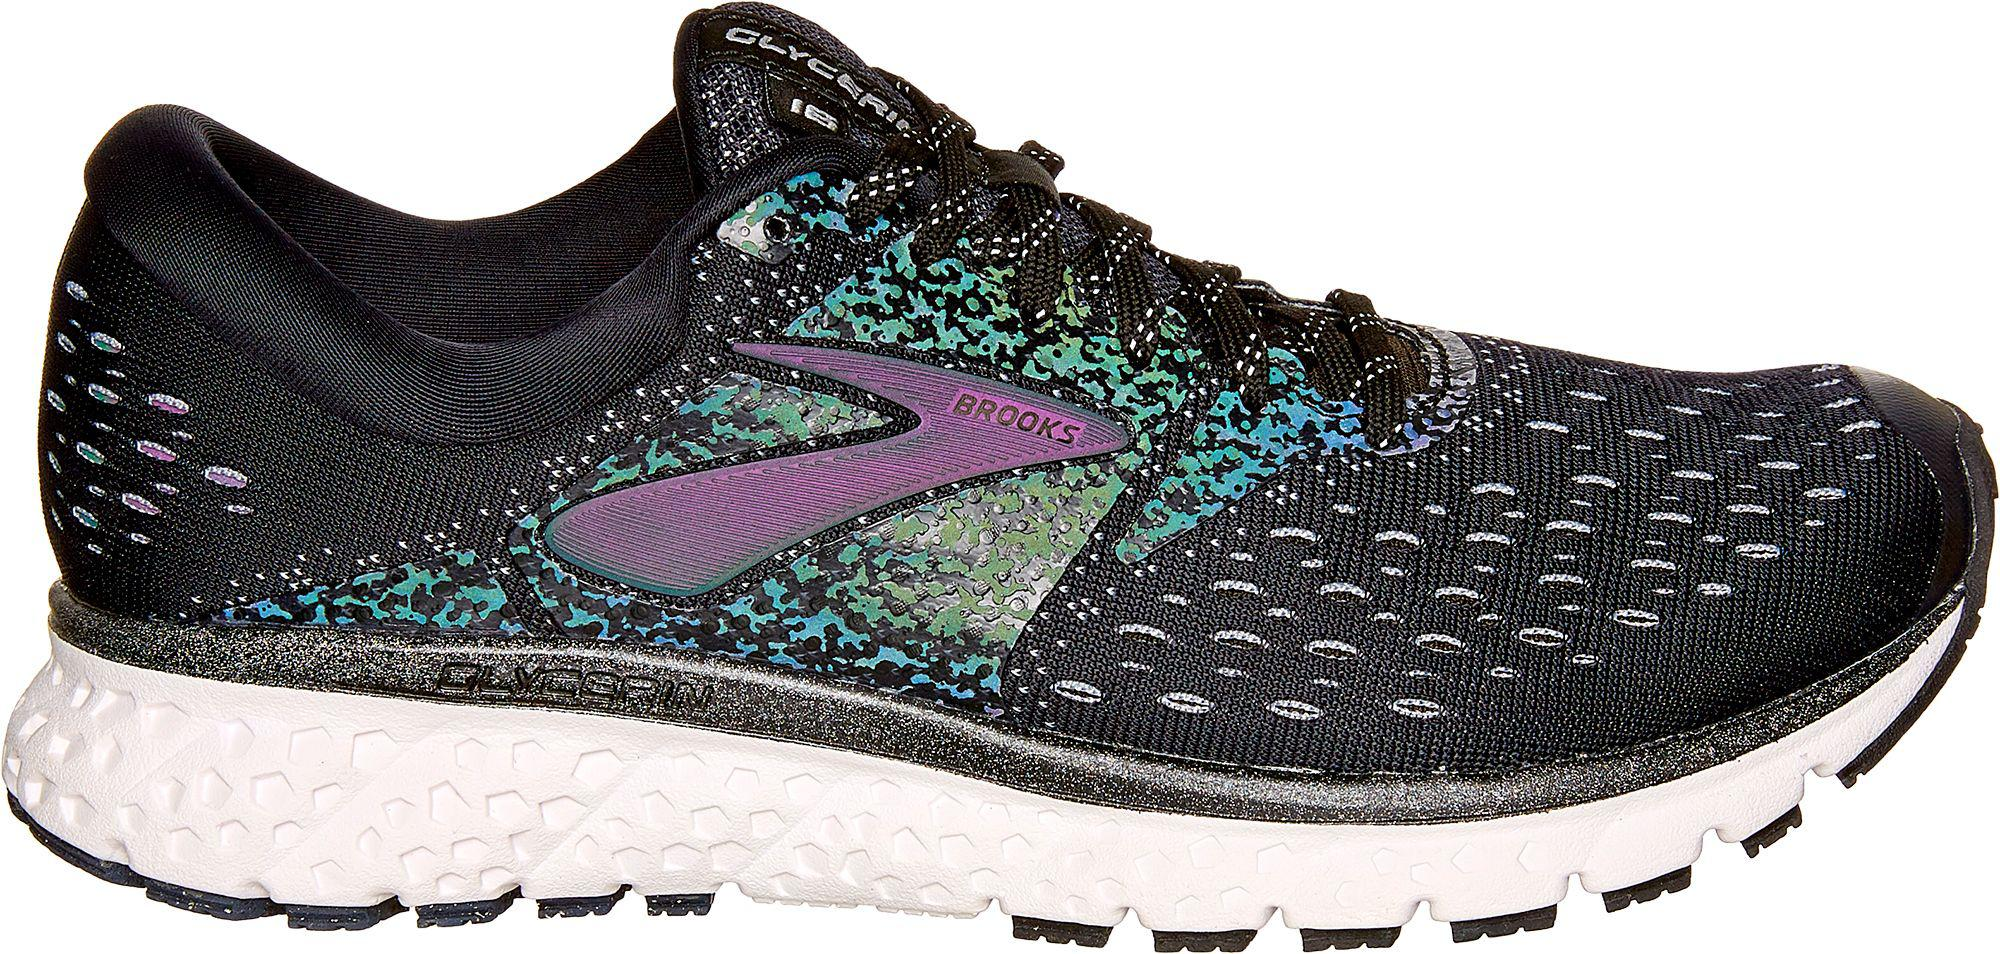 Glycerin 16 Reflective Running Shoes